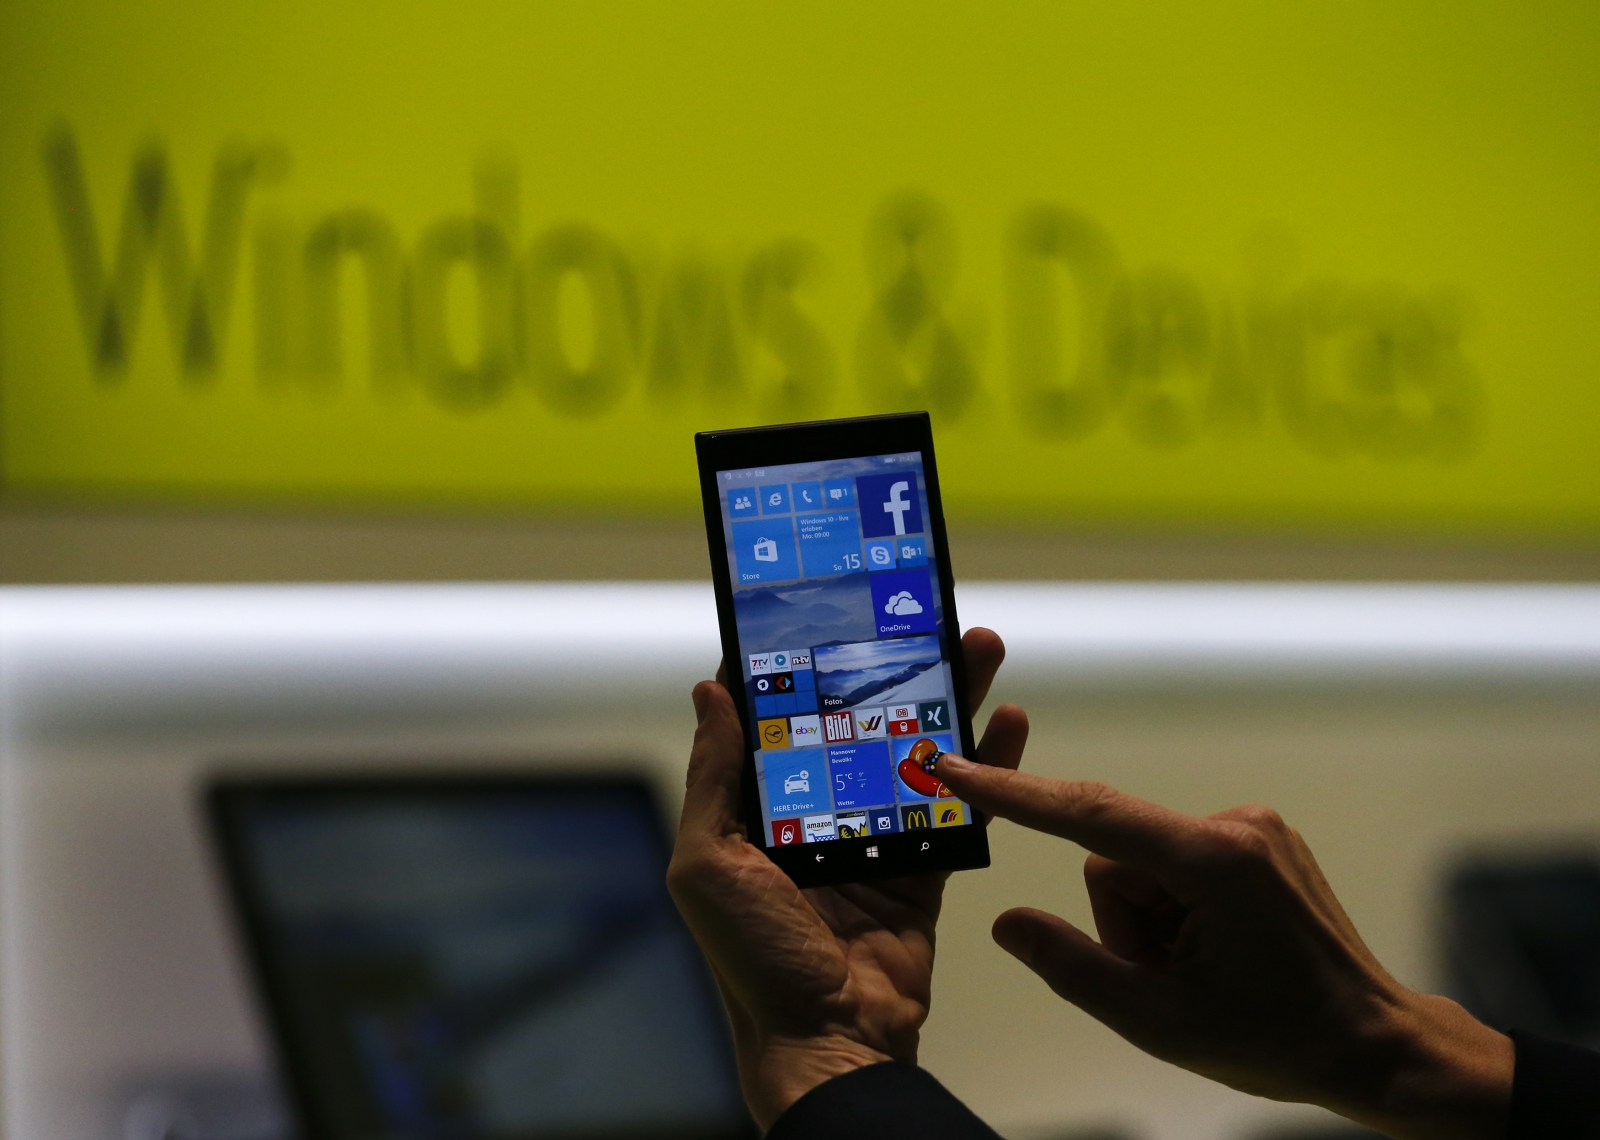 More Microsoft Lumias on the way